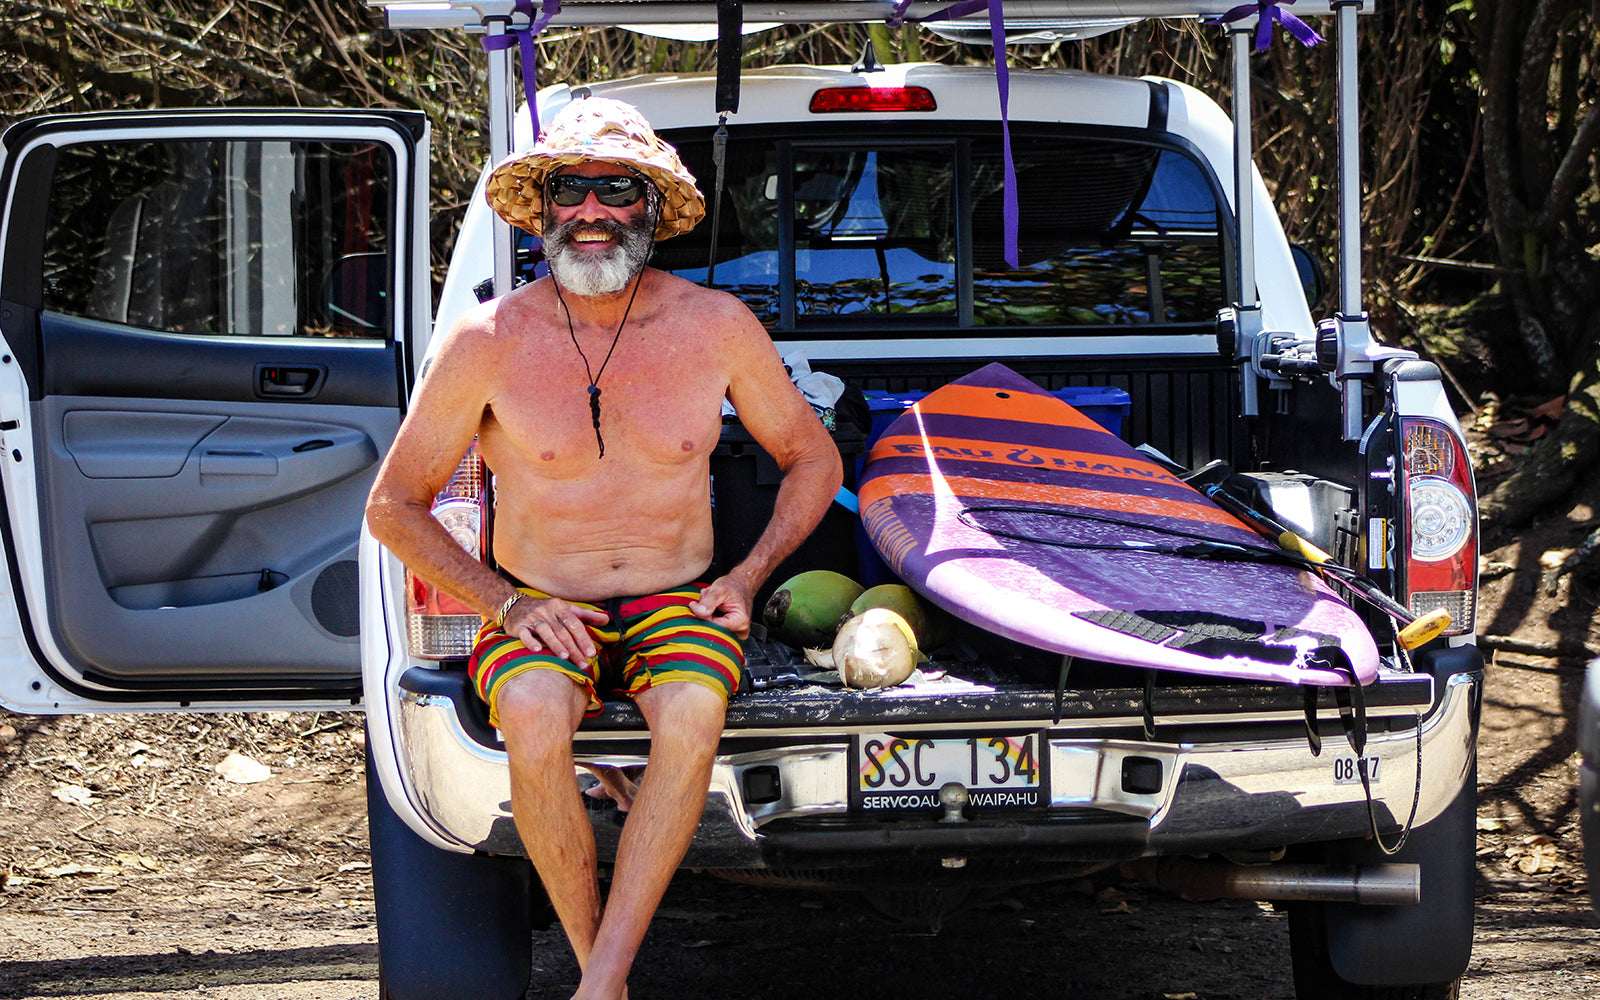 Pau hana surf supply Carve SUP paddle board in back of a truck in Hawaii